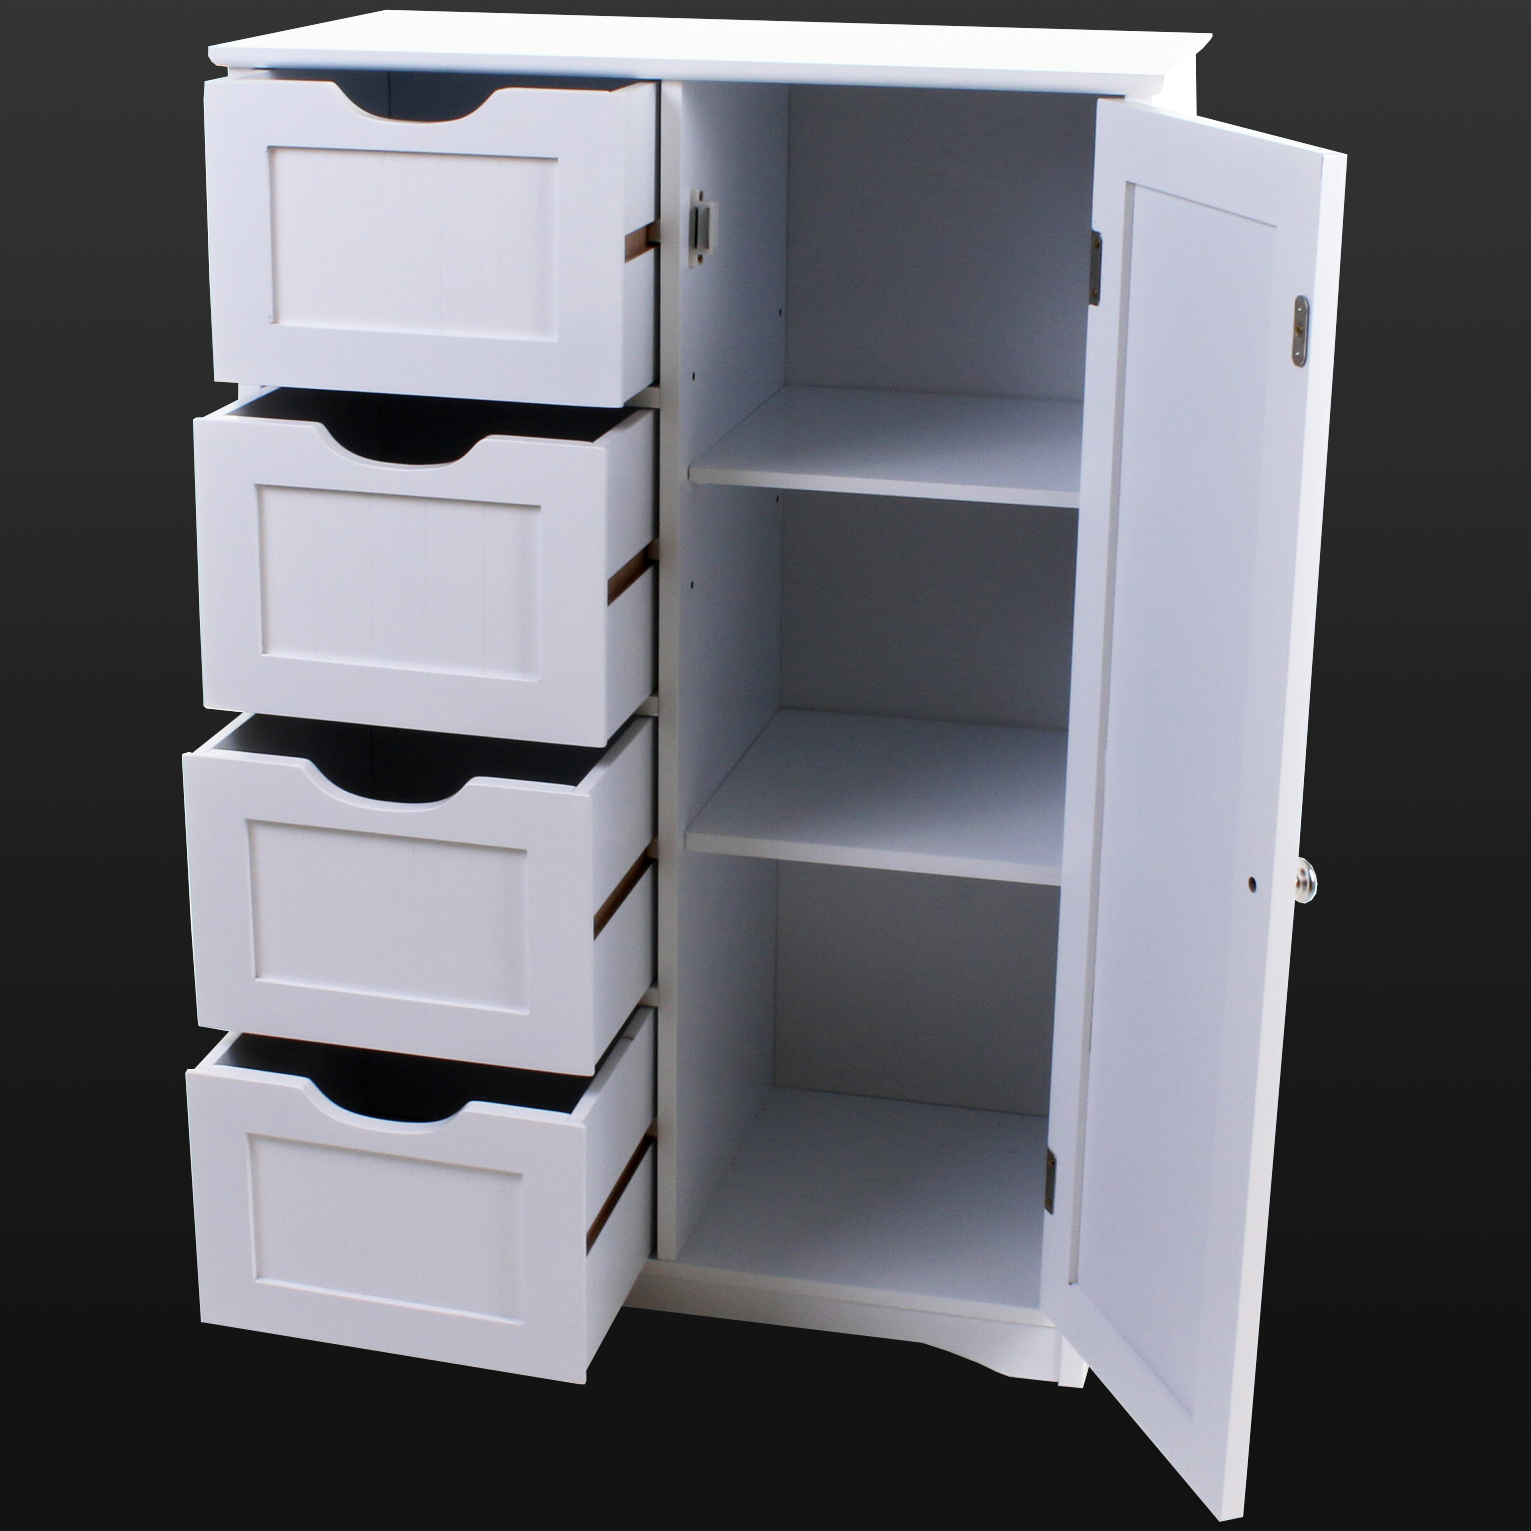 4 drawer bathroom cabinet storage unit wooden chest cupboard white door draw new ebay Wooden bathroom furniture cabinets